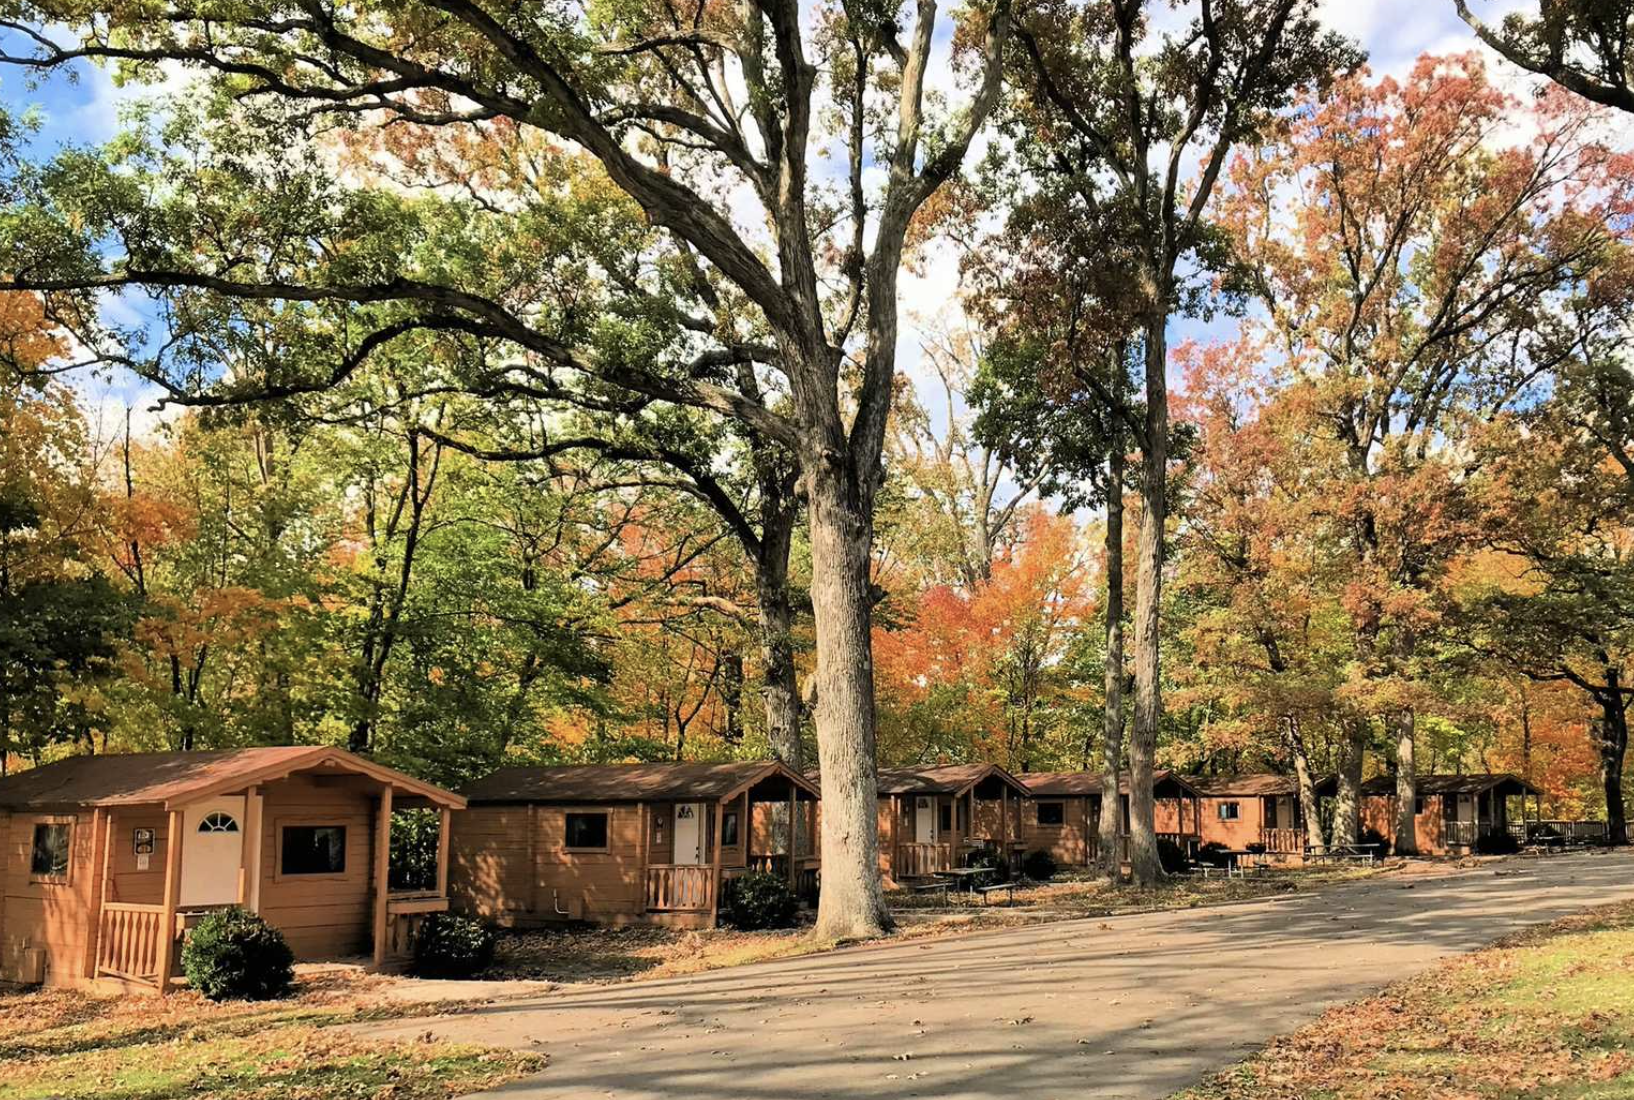 Cabins in the woods during fall time at Jellystone Park Chicago